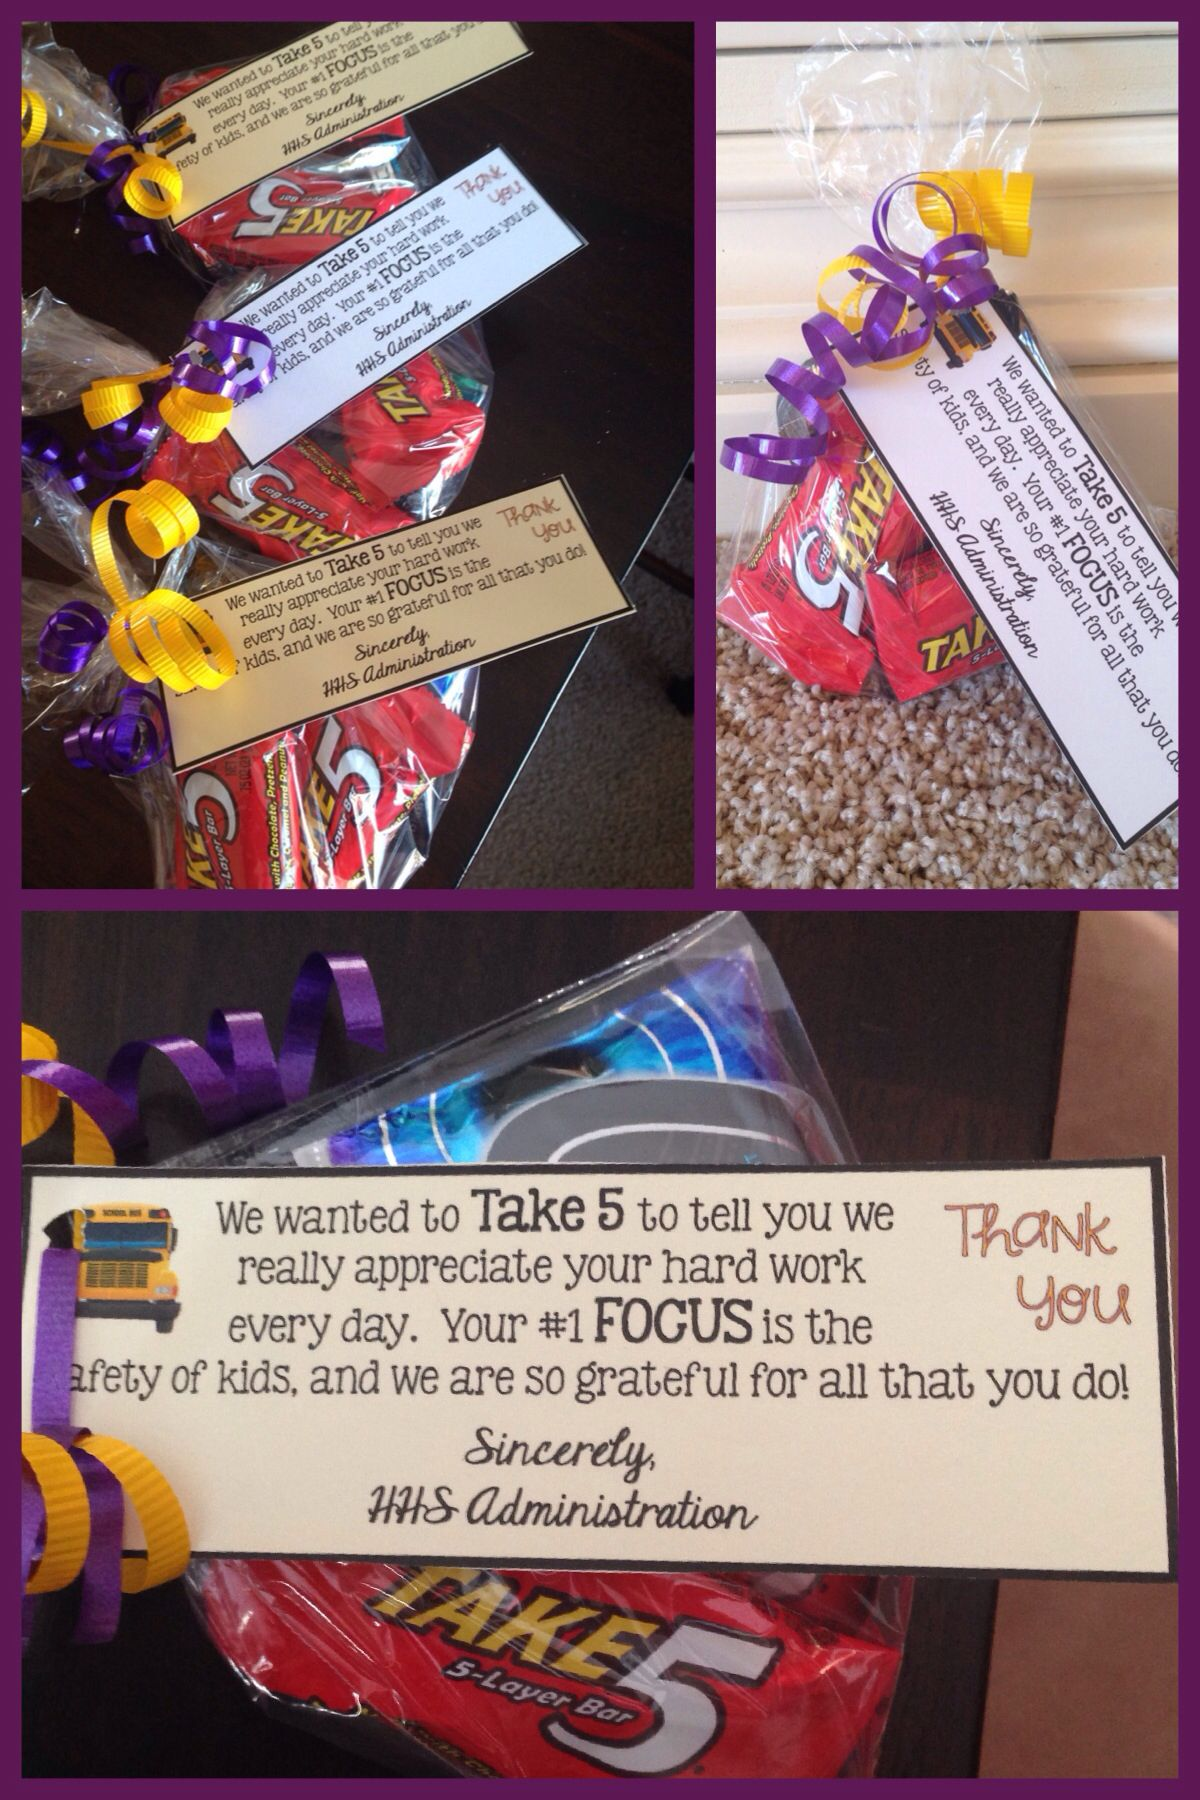 Thank you gift for bus drivers creative using take 5 candy bars thank you gift for bus drivers creative using take 5 candy bars and focus teacher appreciation giftshomemade solutioingenieria Choice Image